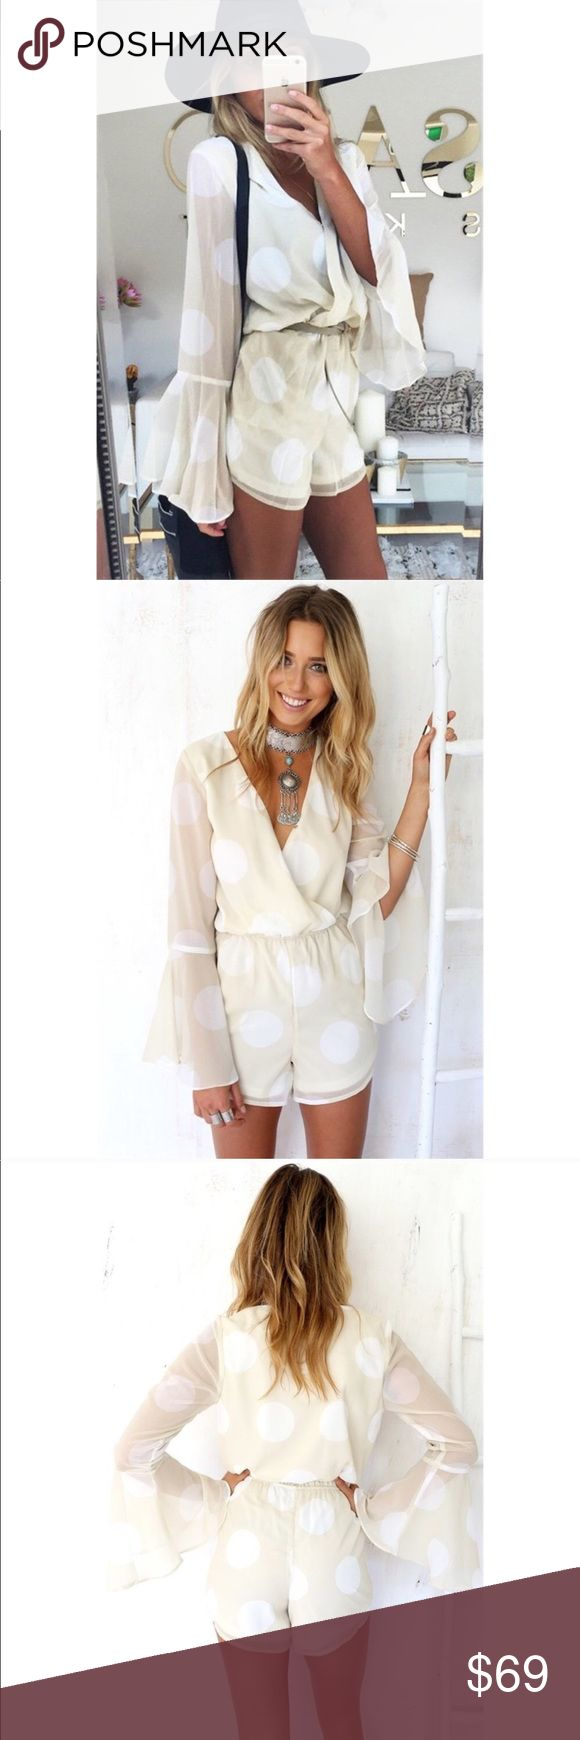 SABO SKIRT Deep V Bell Sleeve Playsuit Romper XS Stunning SABO SKIRT Polka Dot long sleeve playsuit Romper. Size XS. Retail price $80. Mint condition with no flaws. No trades please 🖤 100% Polyester.  This gorgeous cream beige playsuit features white polka dots and a low V plung neckline. Elastic waist. Back invisible zip closure. Long bell sleeves. Lined. Sabo Skirt Pants Jumpsuits & Rompers